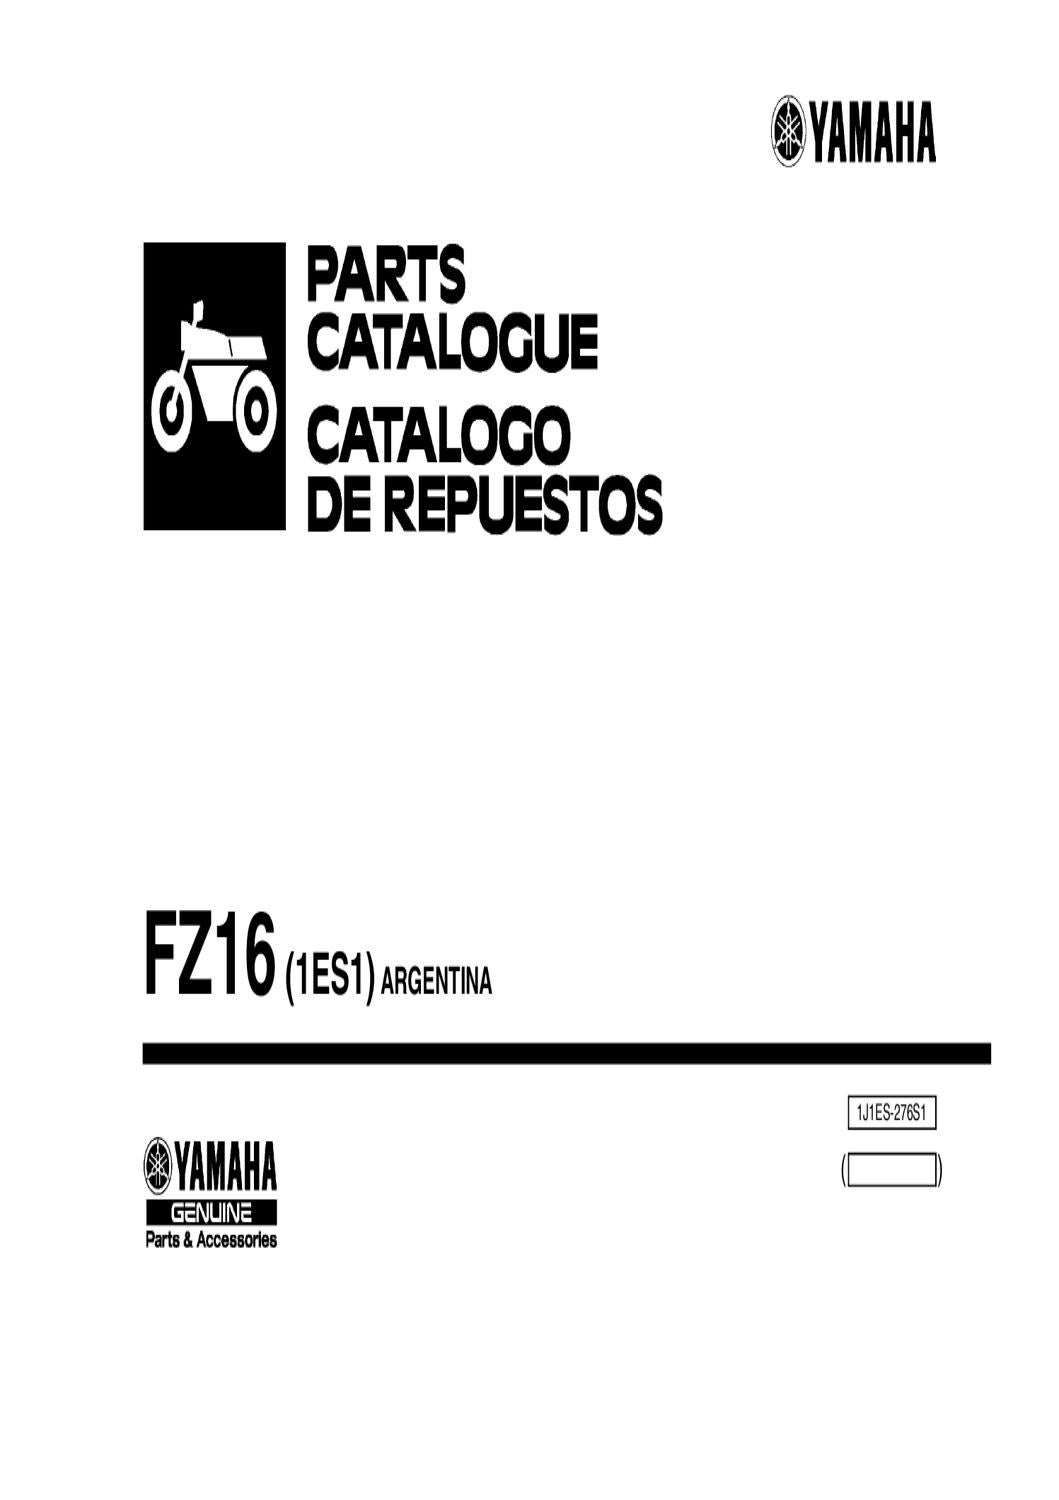 Manual despiece Yamaha FZ 16 (1ES1) 2010 Argentina by